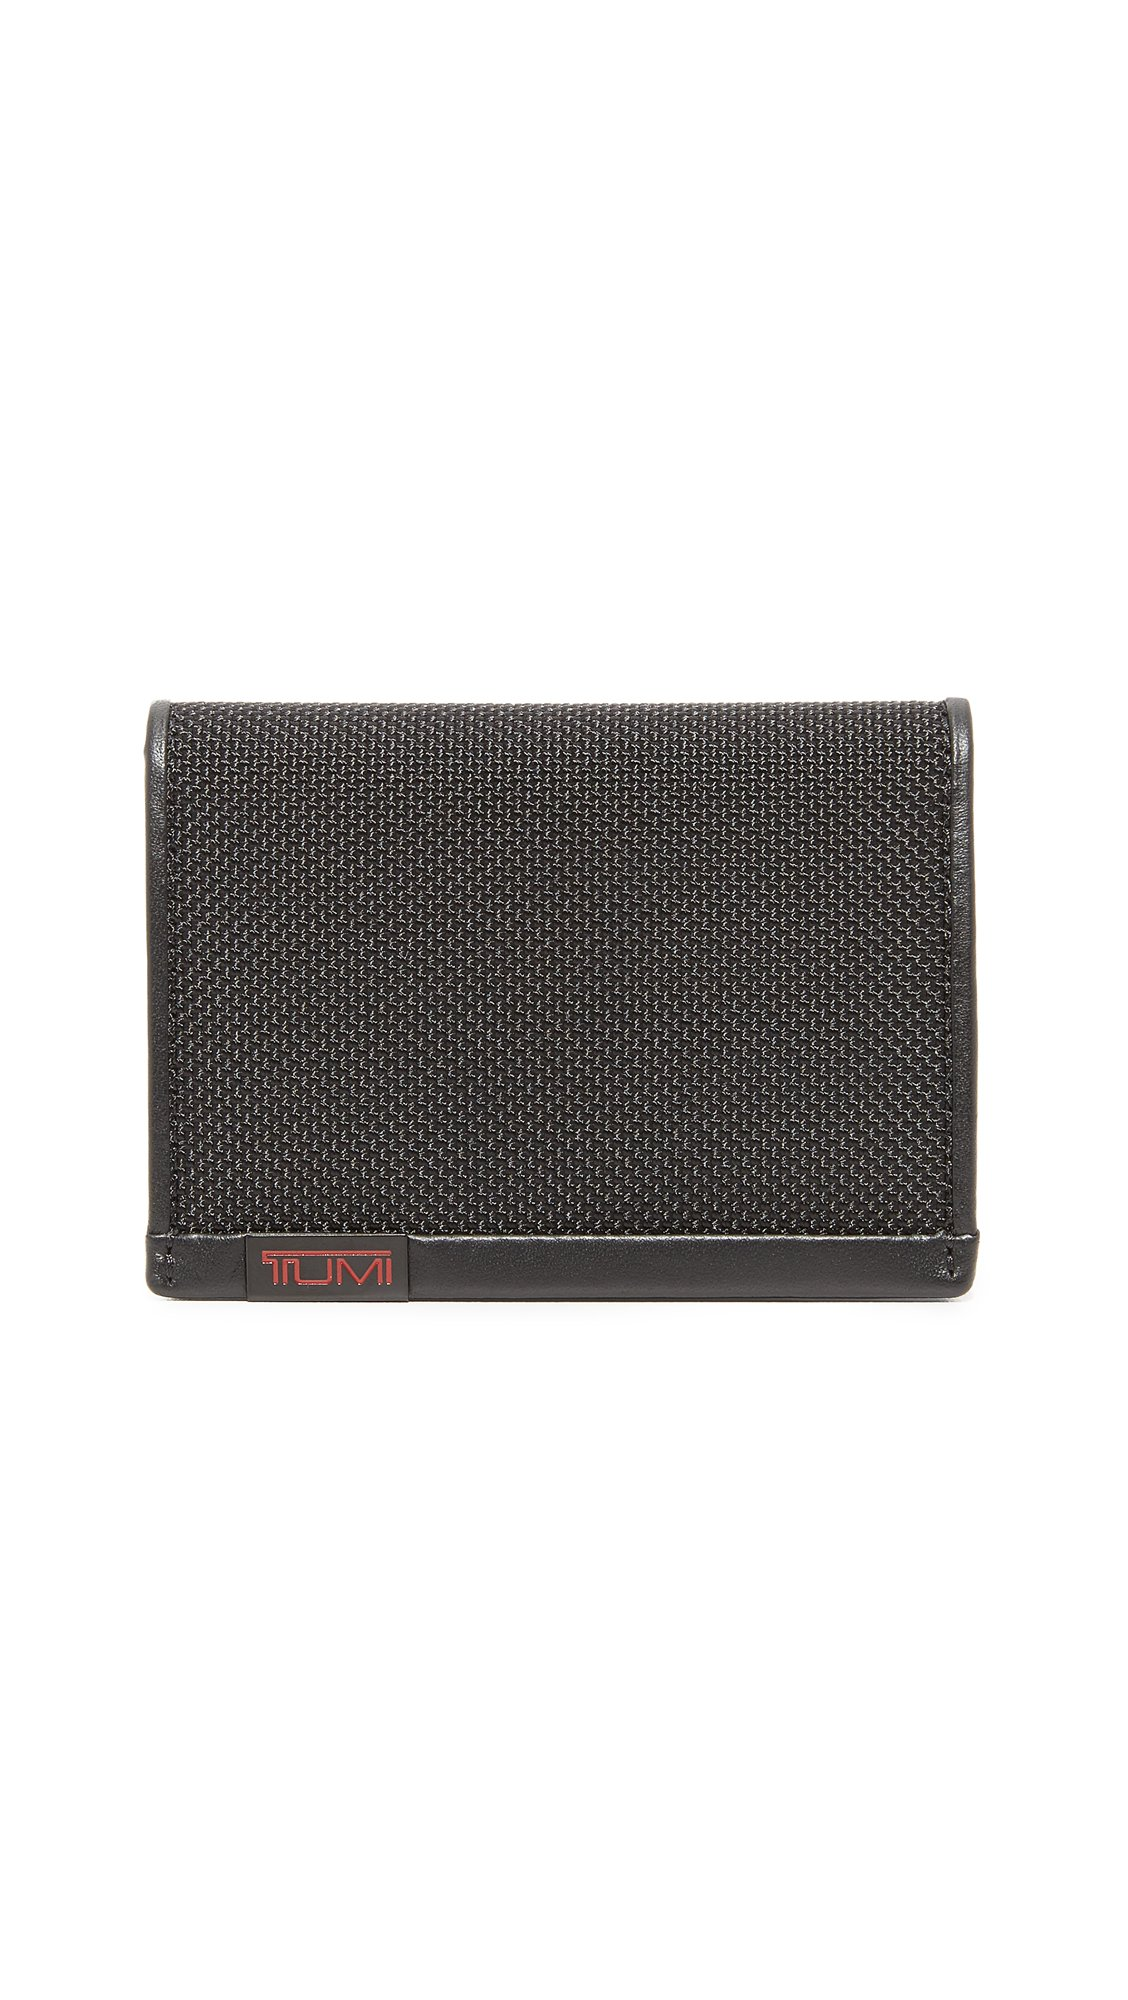 Tumi Alpha Gusseted Card Case with ID,Black,one size by Tumi (Image #1)